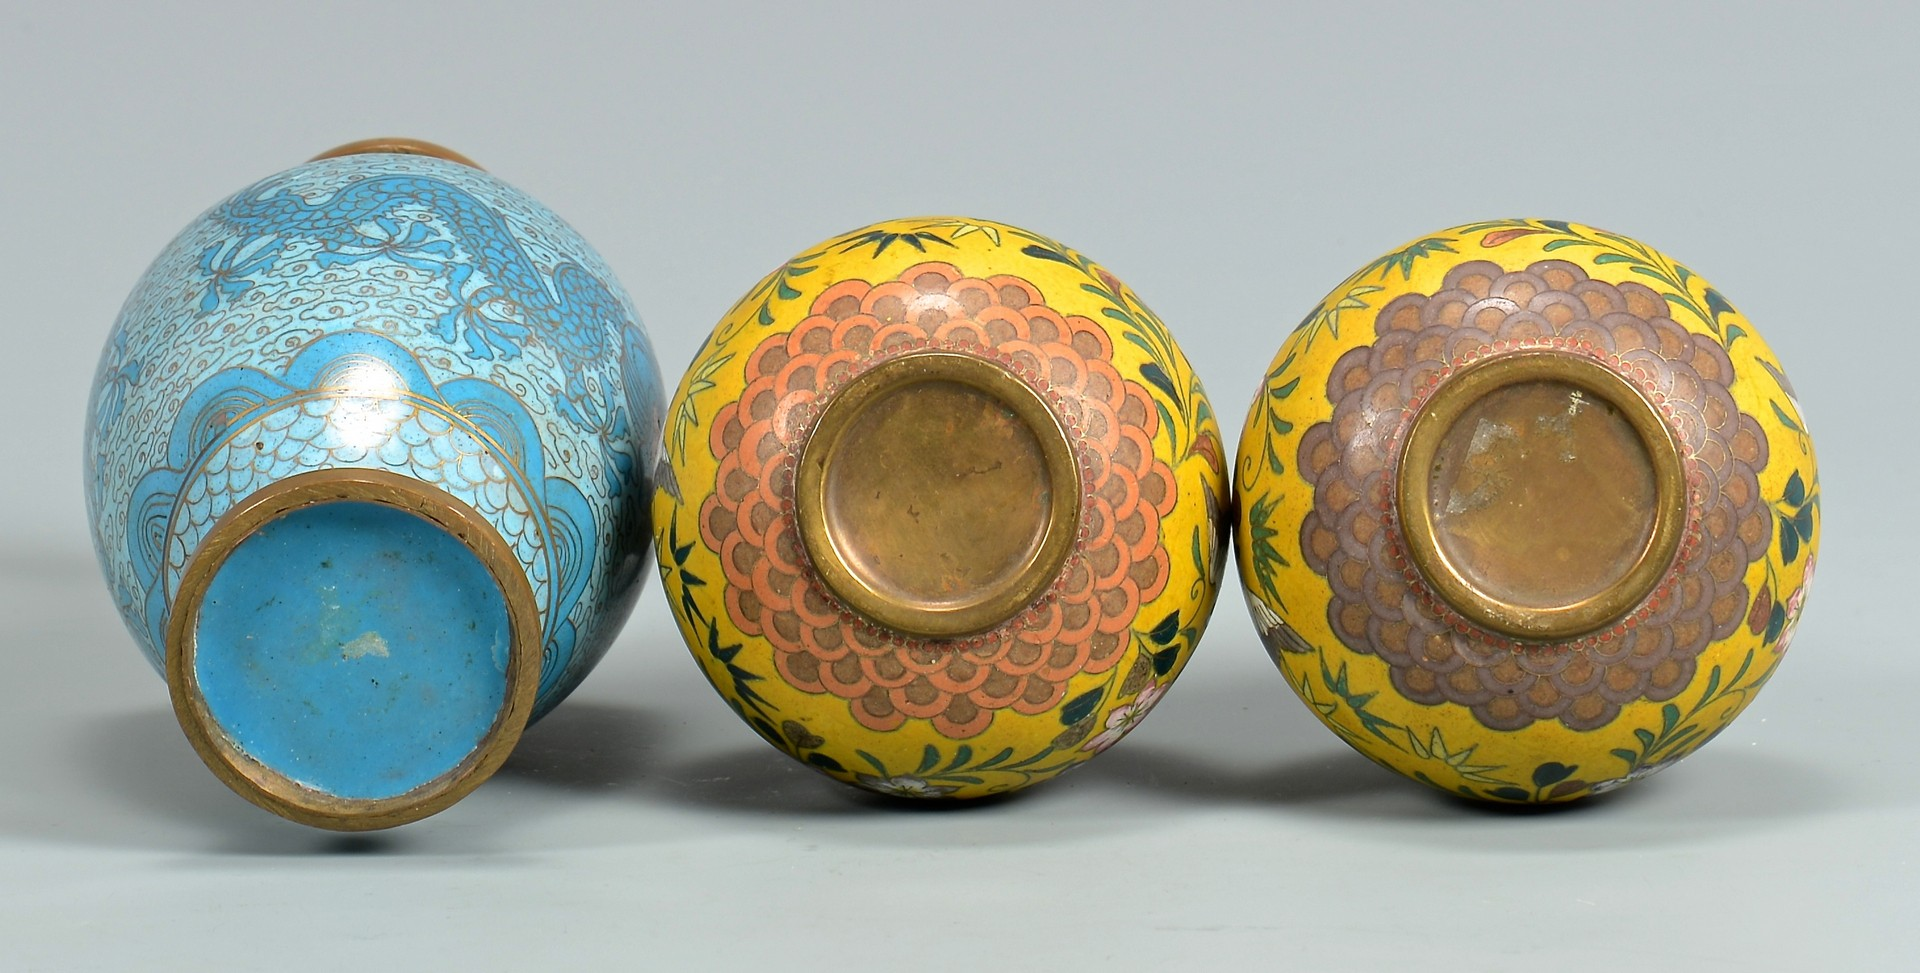 Lot 4010193: Group of 6 Cloisonne Enameled items